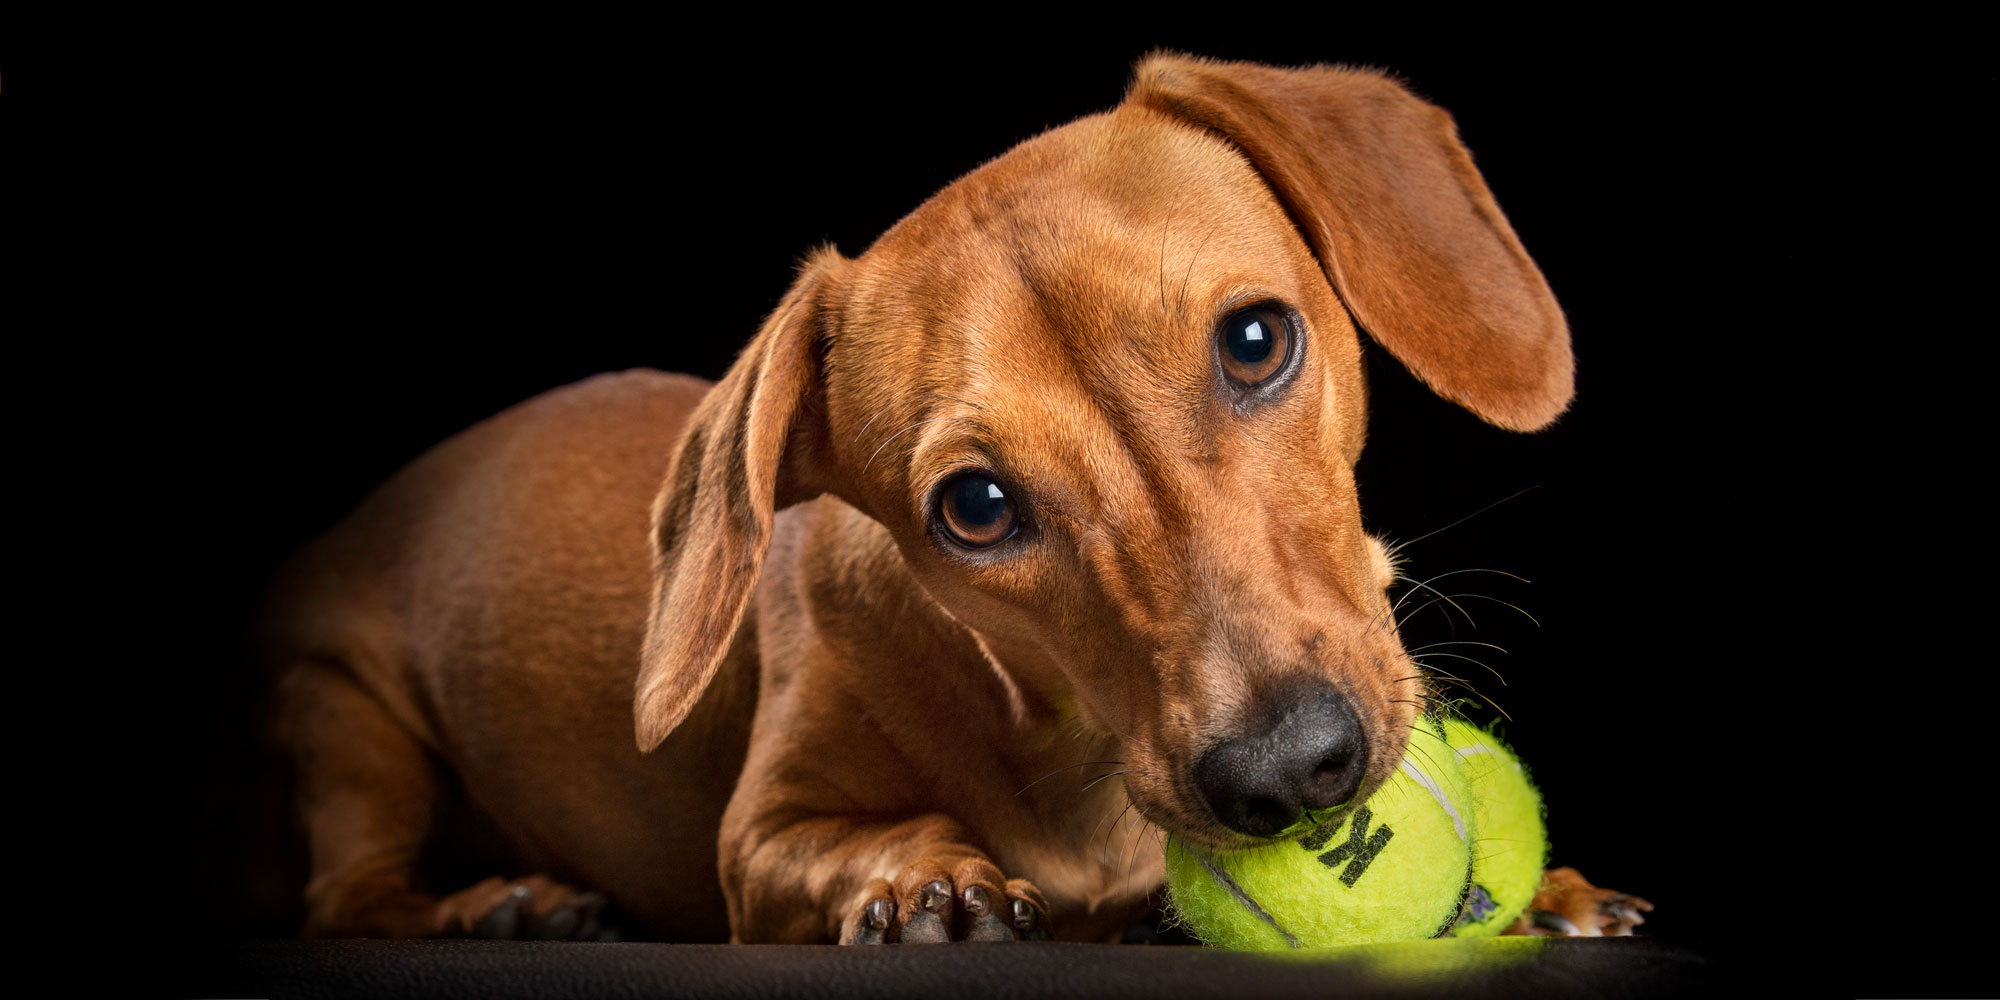 young tan dachshund with green tennis ball in mouth